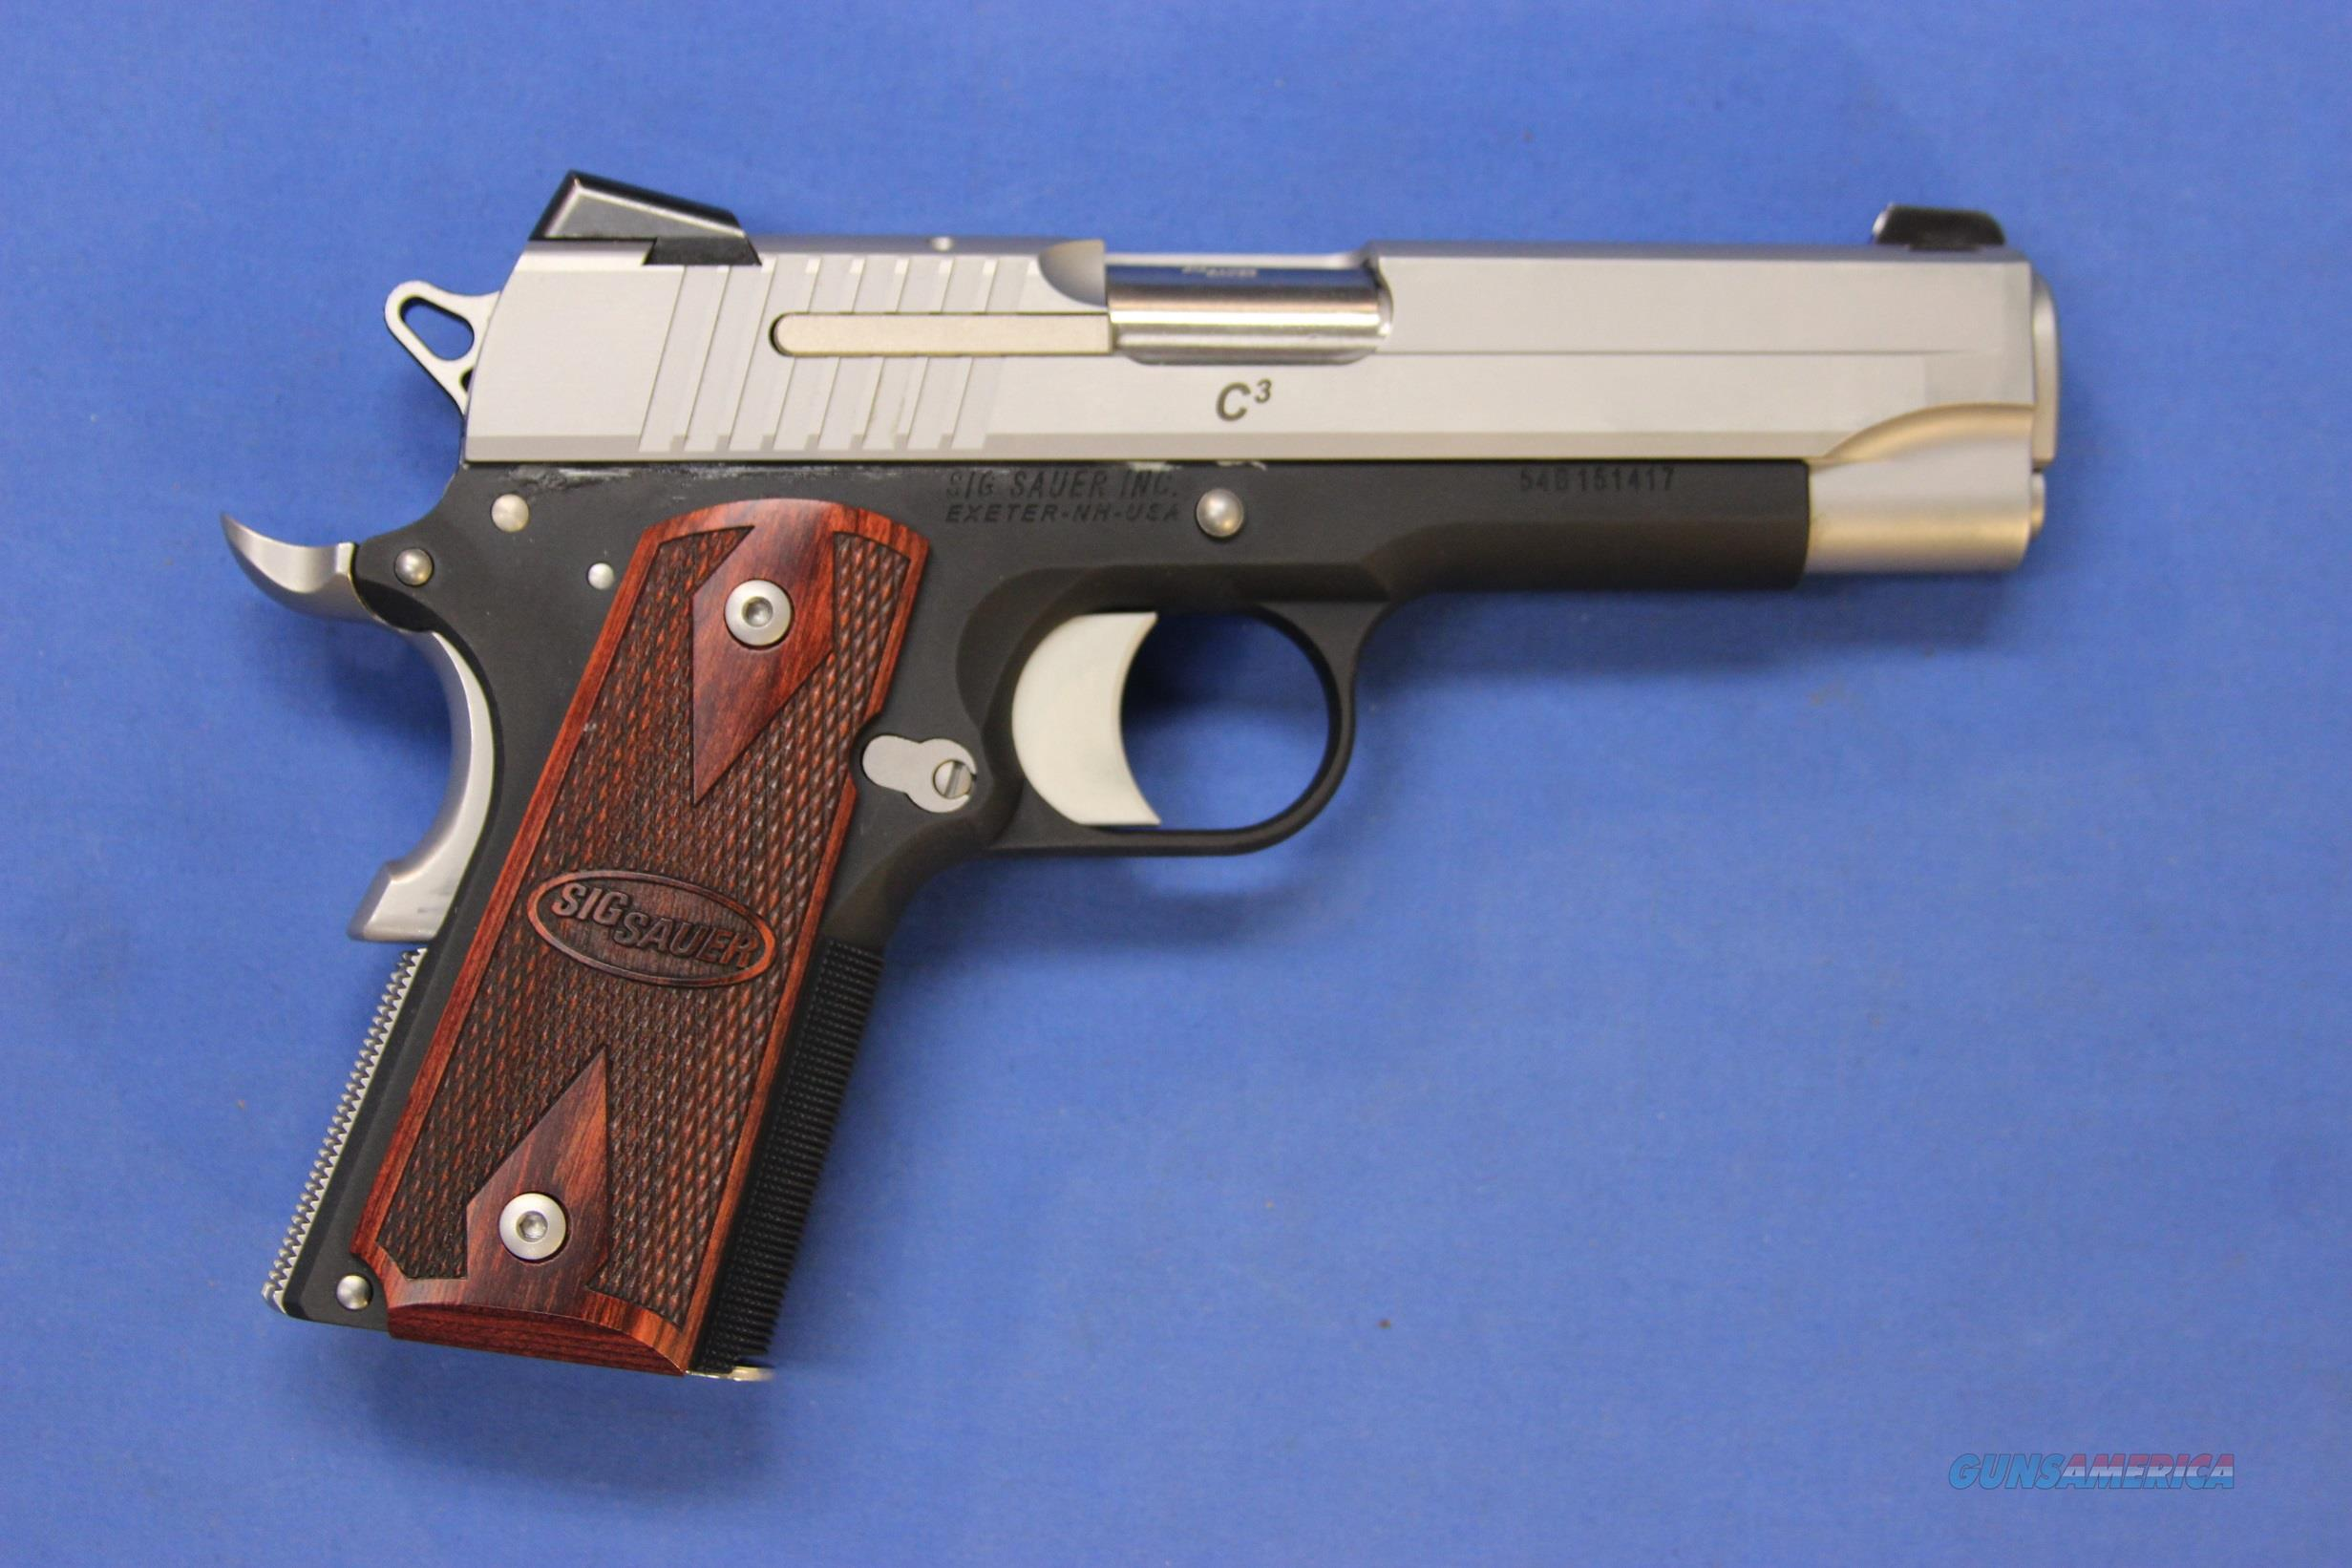 SIG SAUER 1911 C3 TWO-TONE .45 ACP - NEW IN BOX!  Guns > Pistols > Sig - Sauer/Sigarms Pistols > 1911